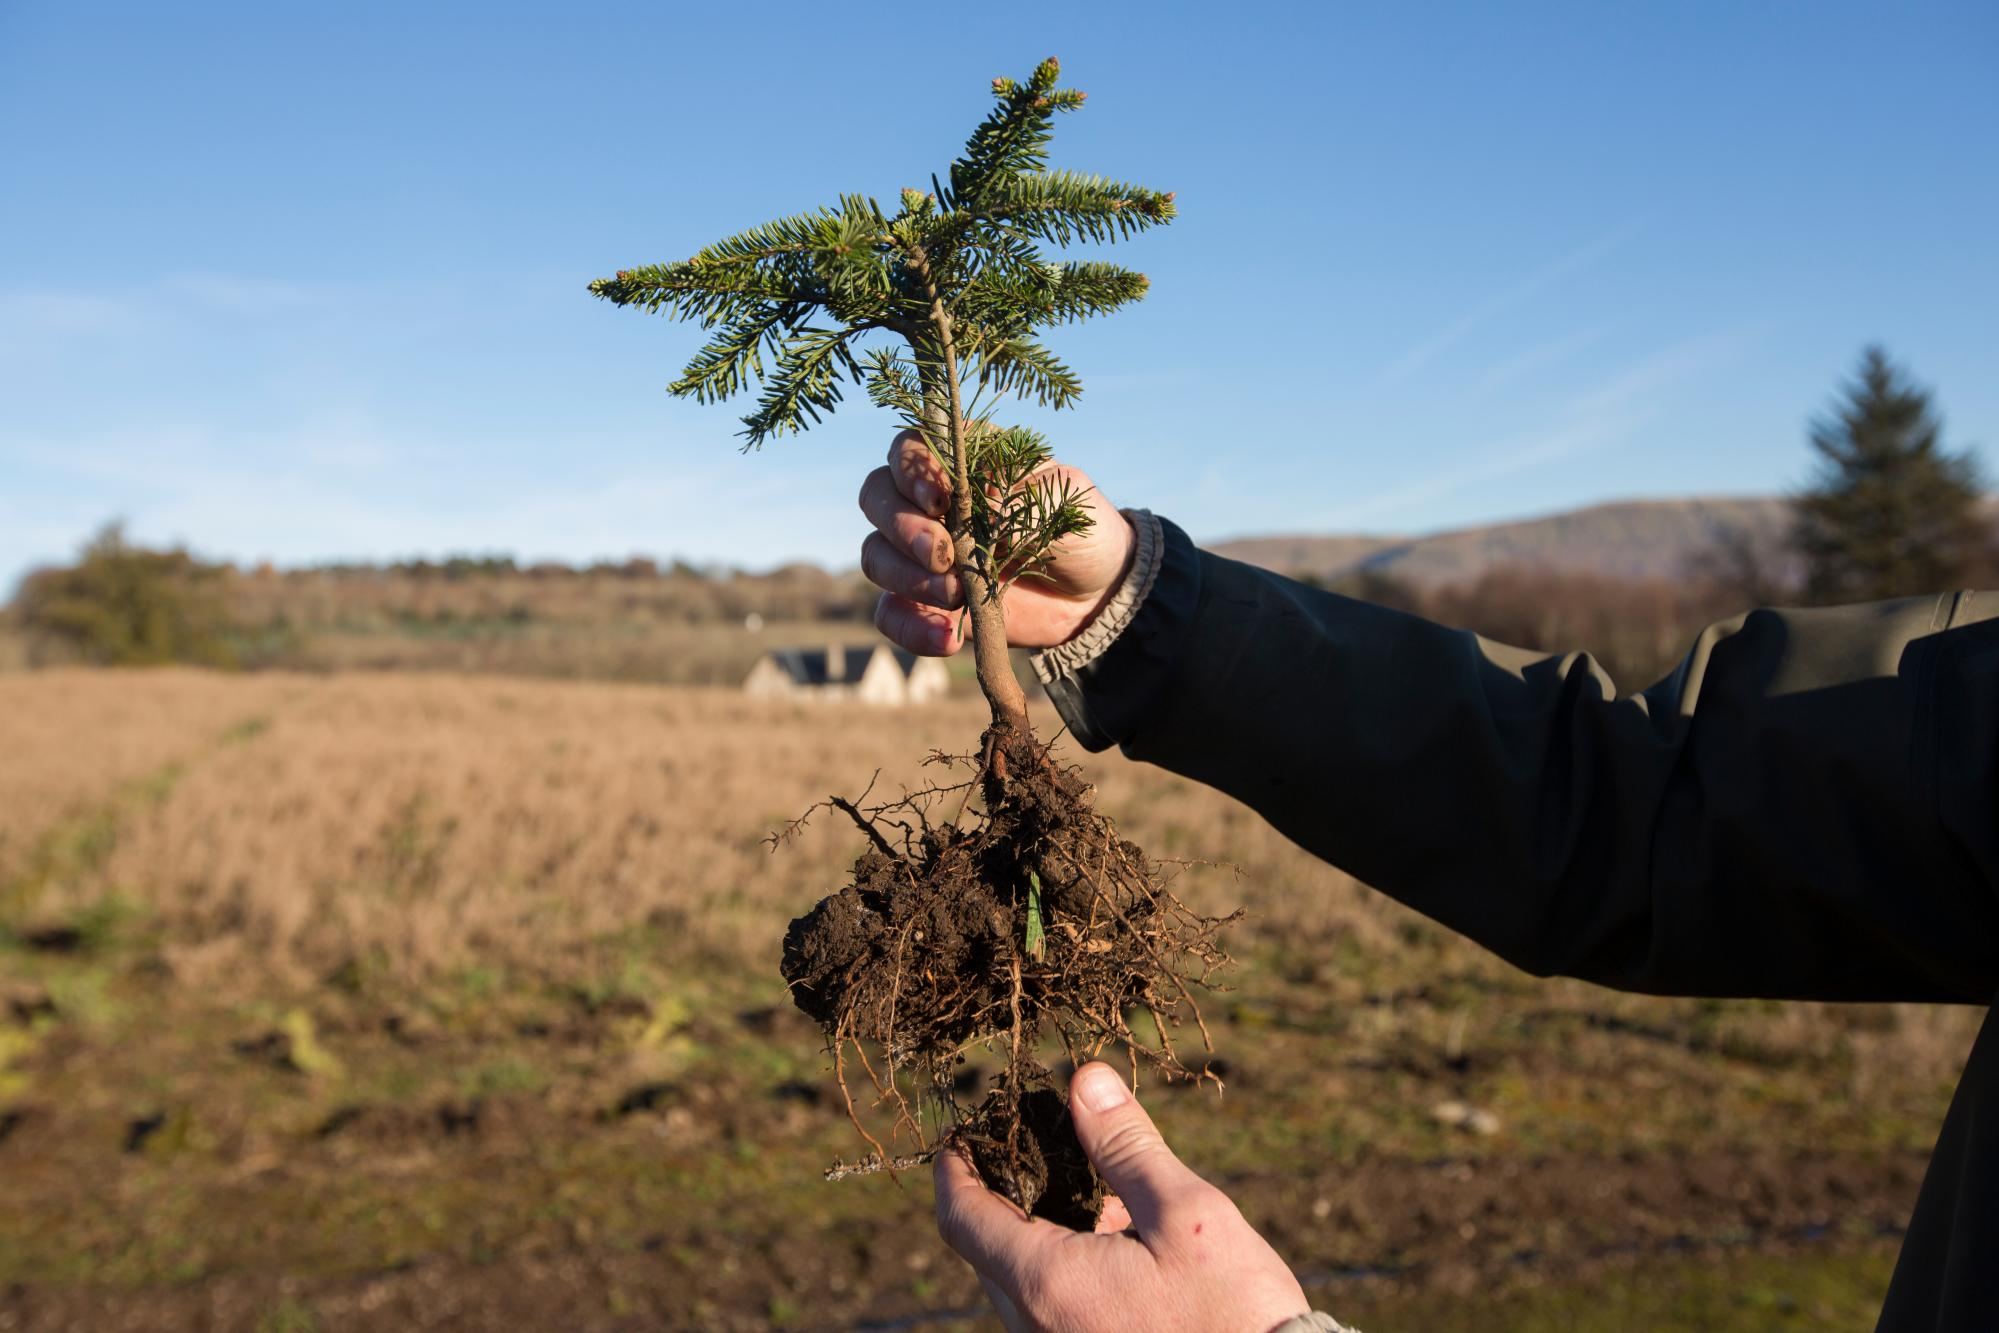 Planting a Real Christmas Tree